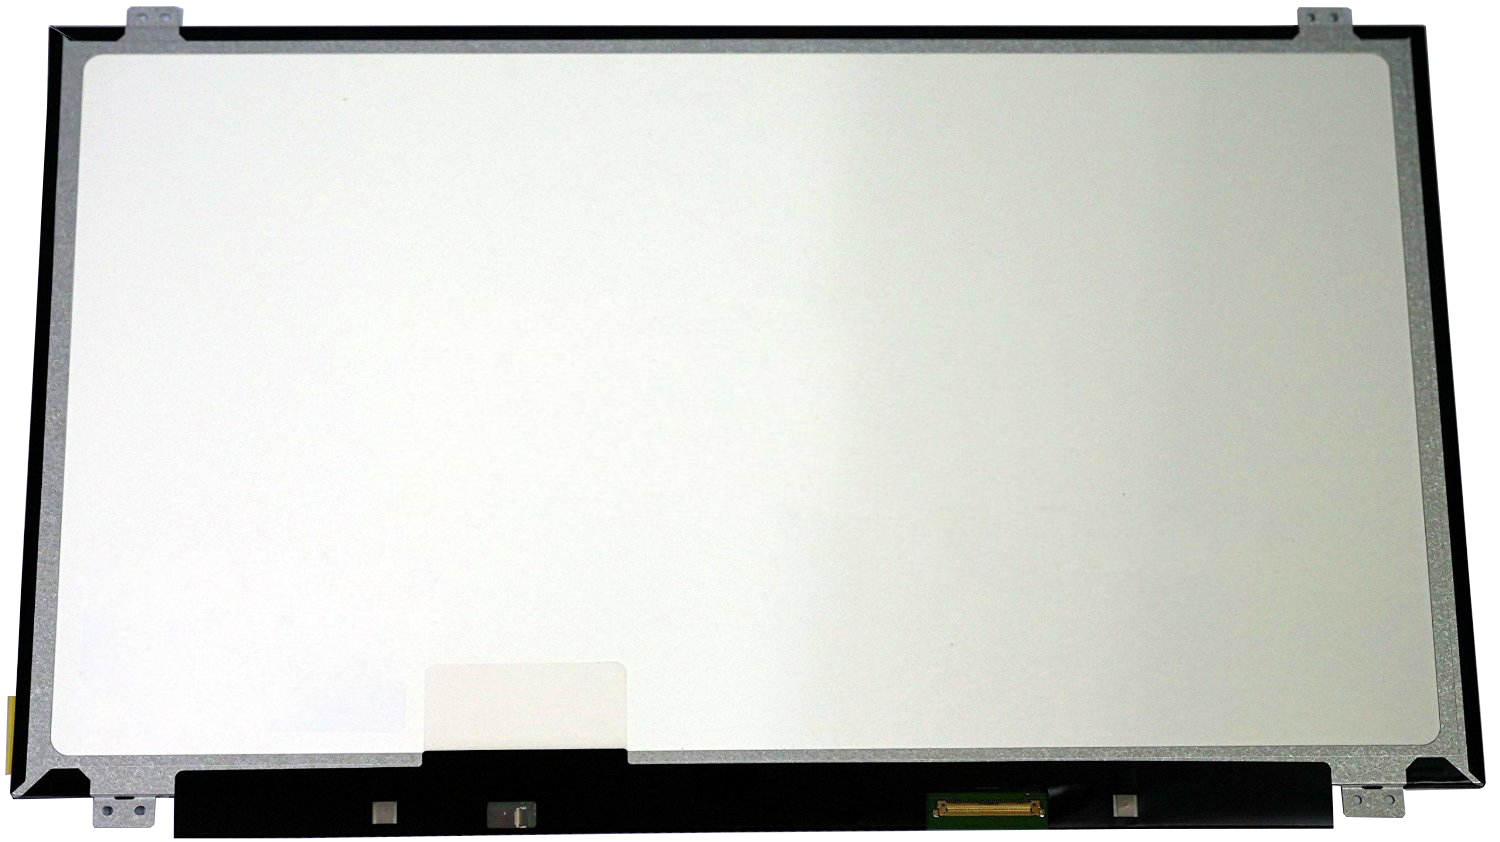 QuYing Laptop LCD Screen for ACER ASPIRE E1-510 E1-532G E1-572G E1-530G E5-551 E5-551G E5-571 SERIES (15.6 inch 1366x768 30pin) битоков арт блок z 551